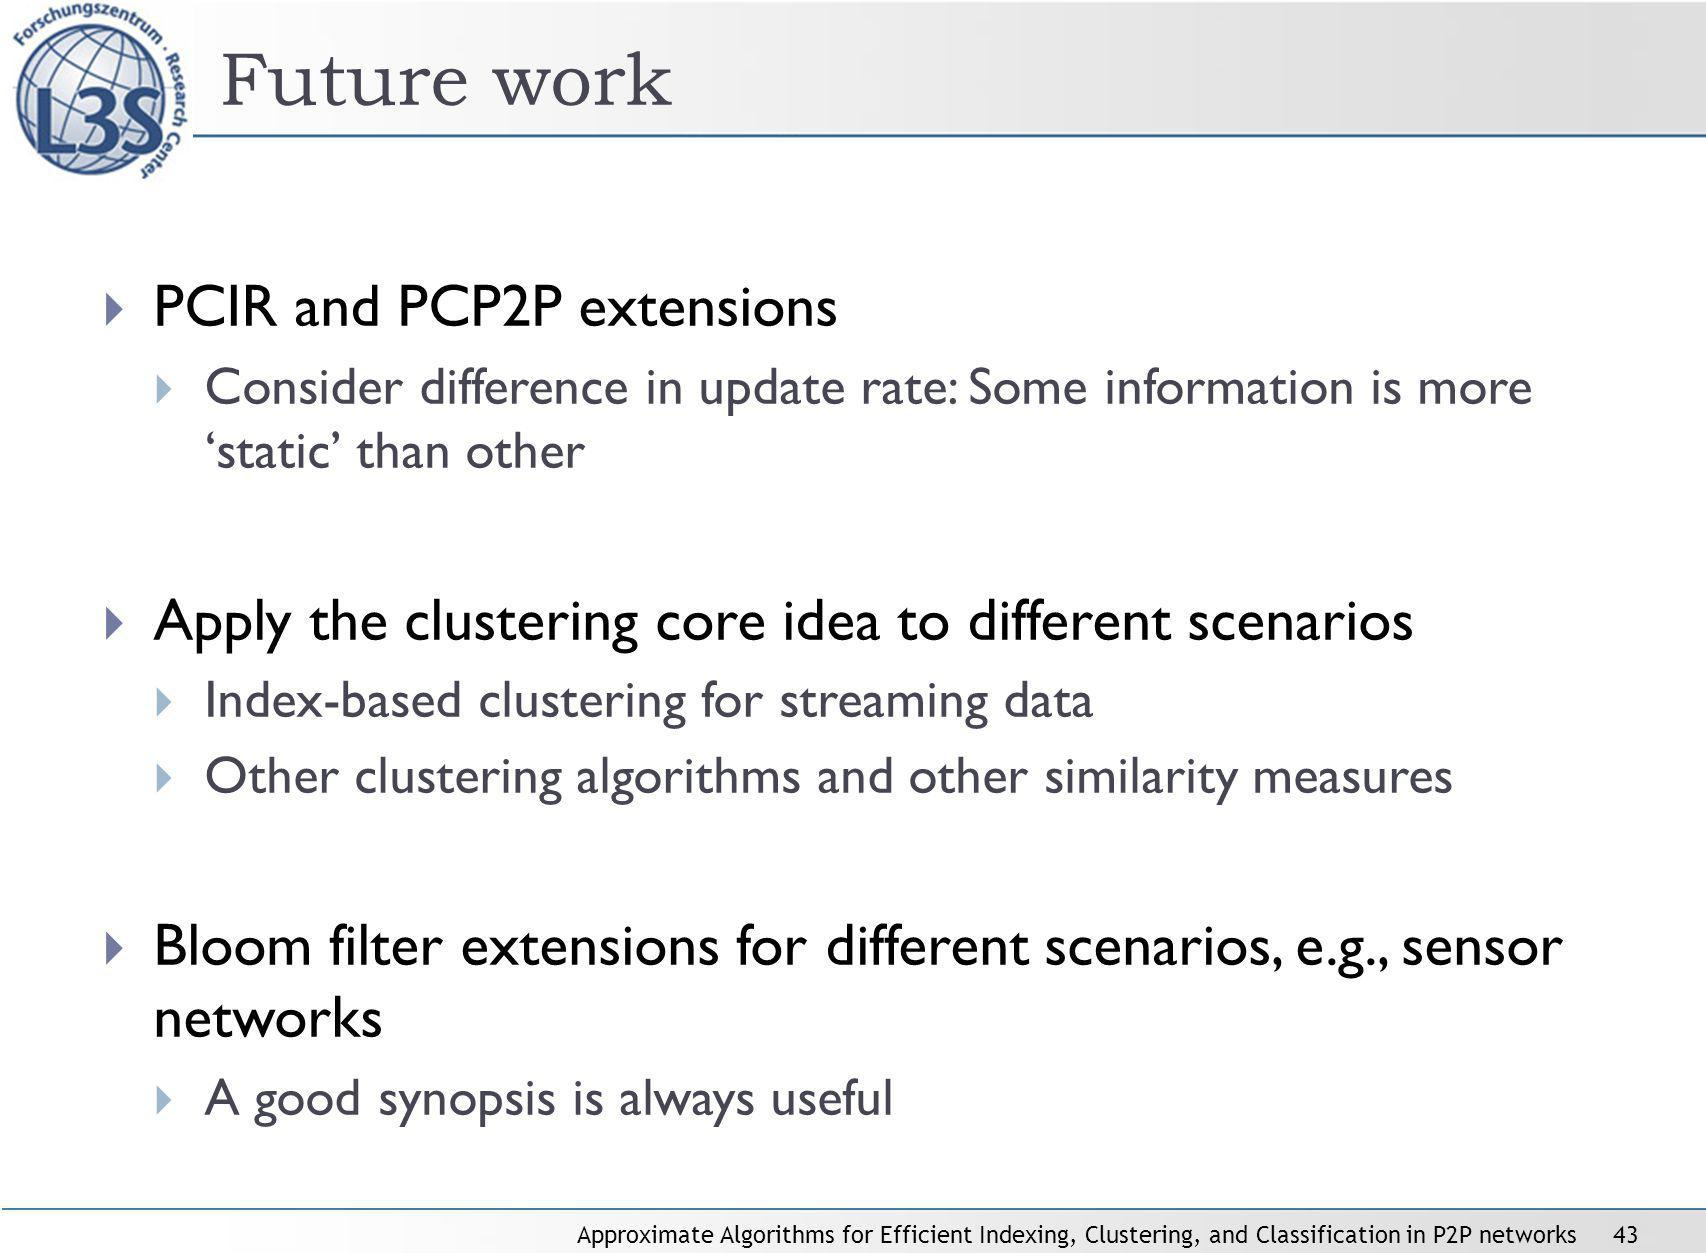 Approximate Algorithms for Efficient Indexing, Clustering, and Classification in P2P networks43 Future work PCIR and PCP2P extensions Consider difference in update rate: Some information is more static than other Apply the clustering core idea to different scenarios Index-based clustering for streaming data Other clustering algorithms and other similarity measures Bloom filter extensions for different scenarios, e.g., sensor networks A good synopsis is always useful